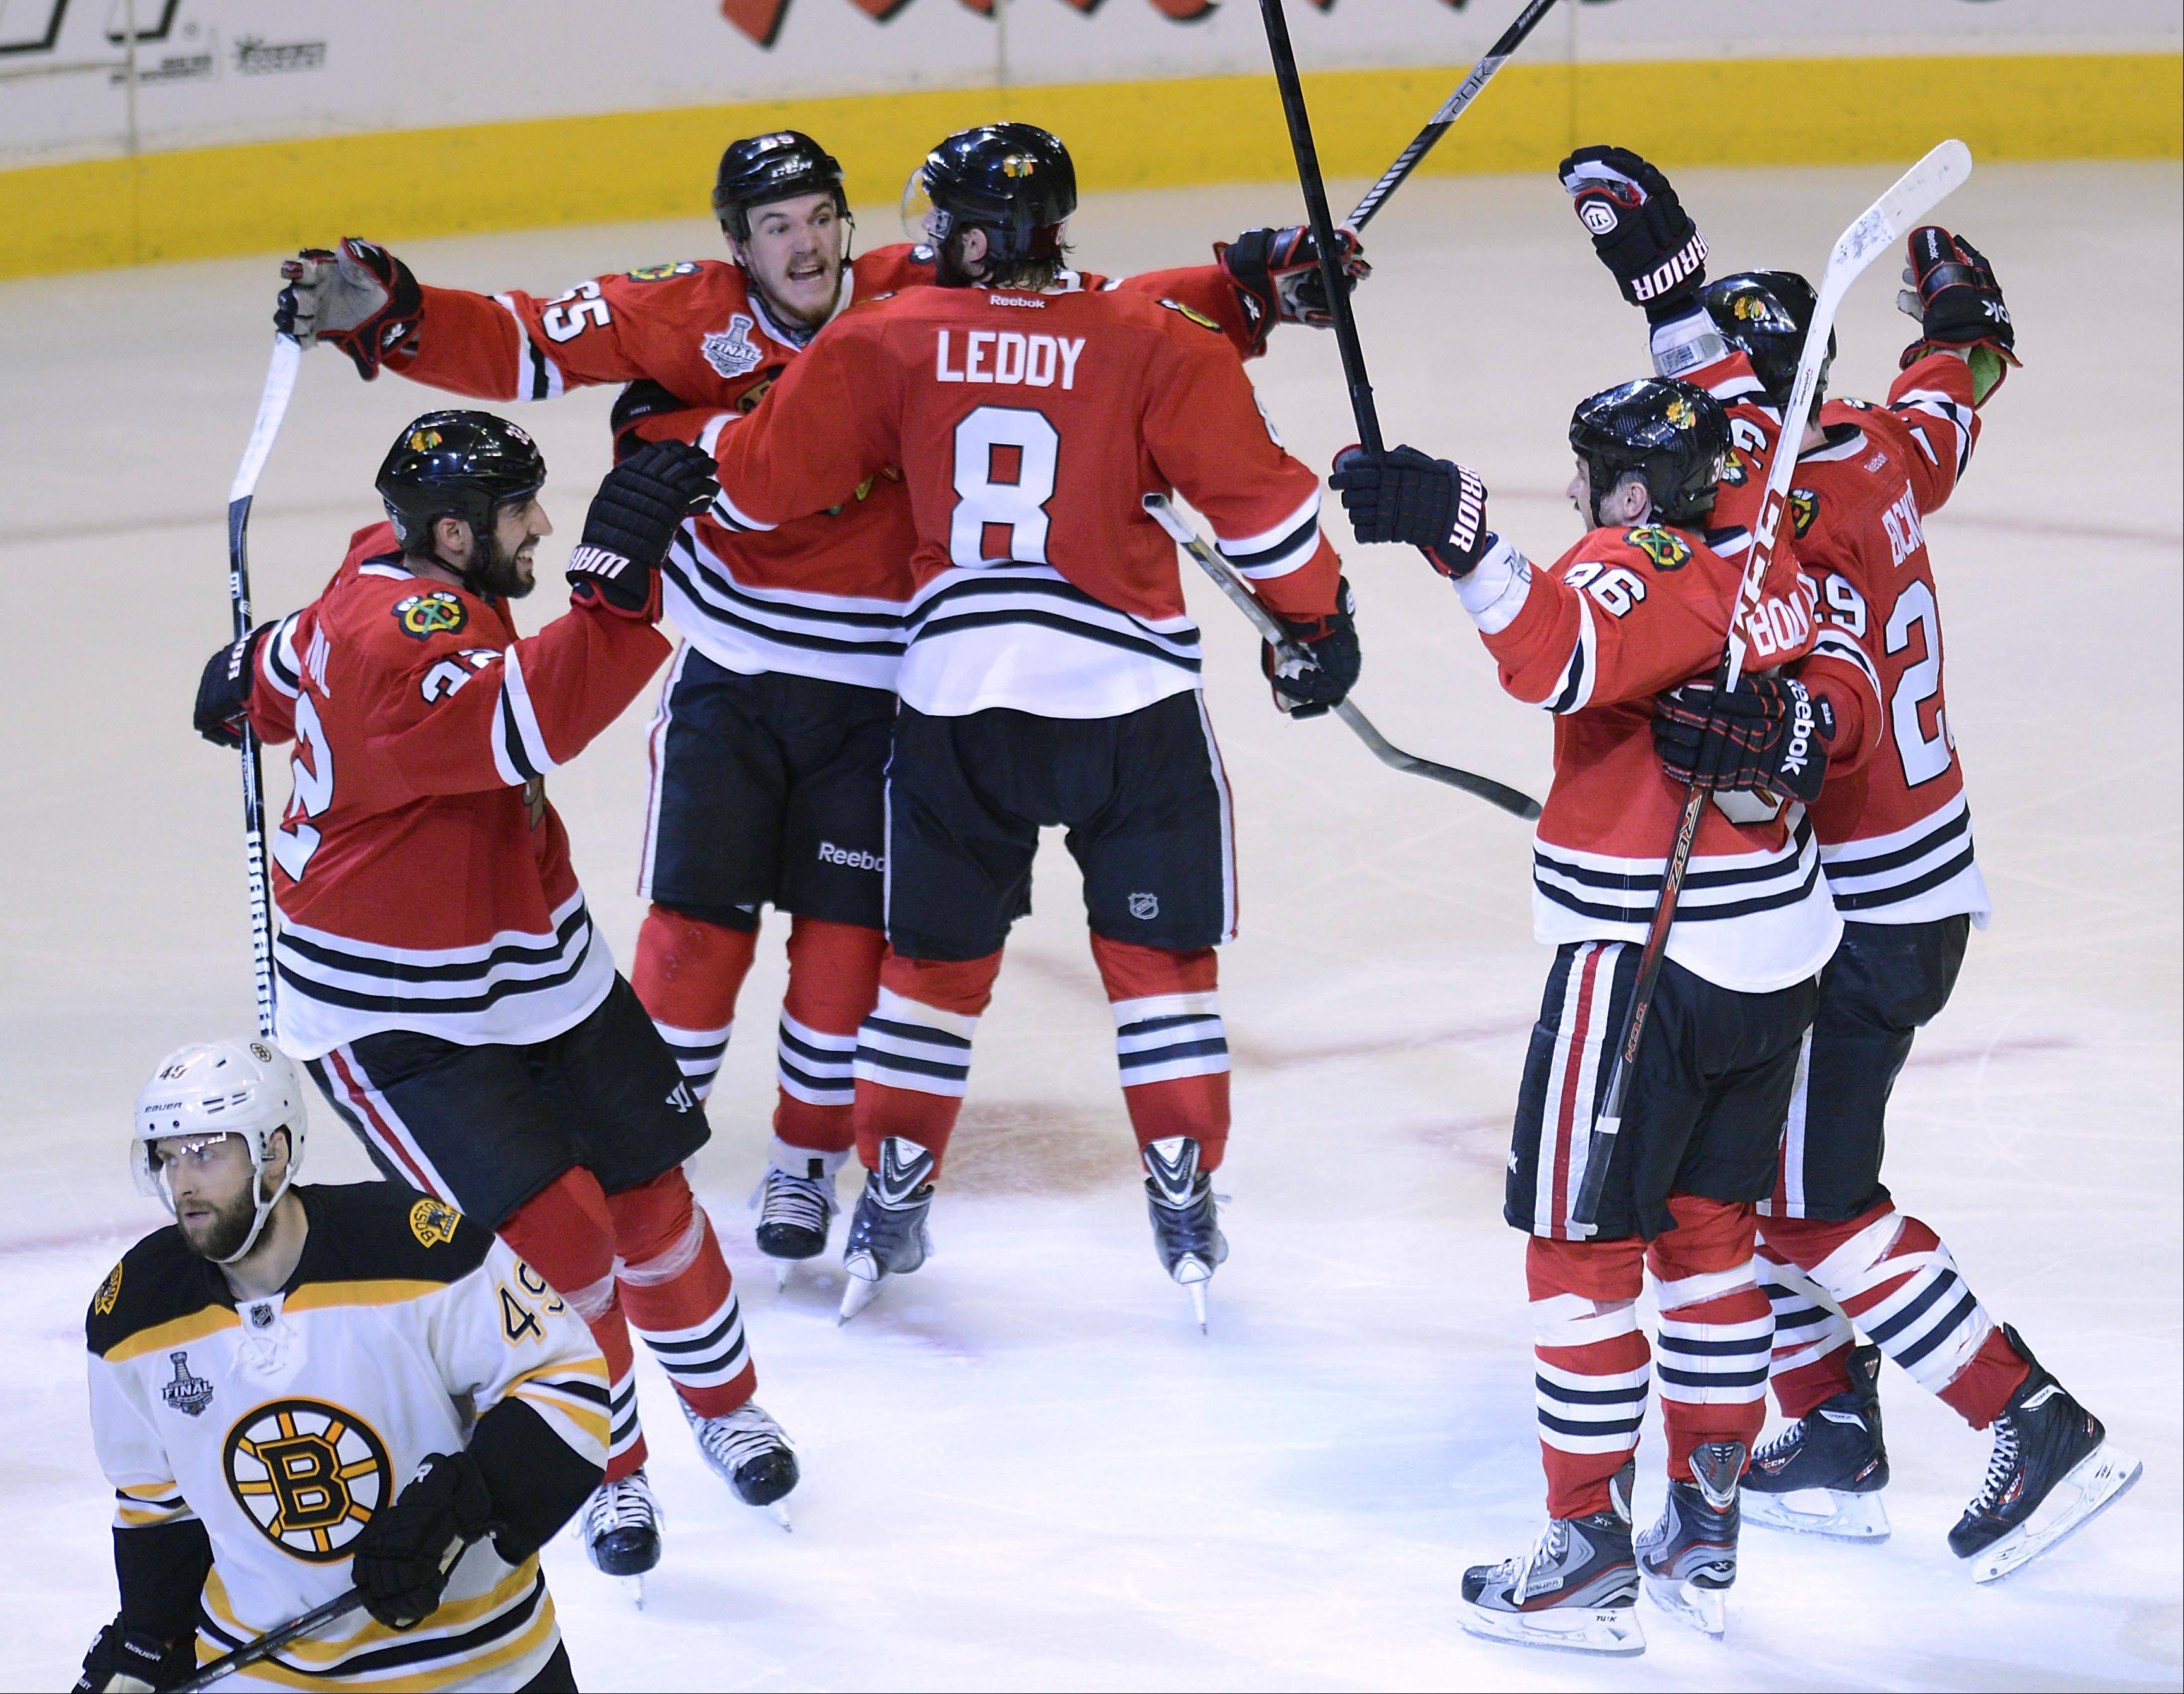 John Starks/jstarks@dailyherald.comChicago Blackhawks center Andrew Shaw is surrounded by teammates after his game-winning goal in the third overtime against the Boston Bruins during Game 1 of the Stanley Cup Finals Wednesday at the United Center in Chicago.